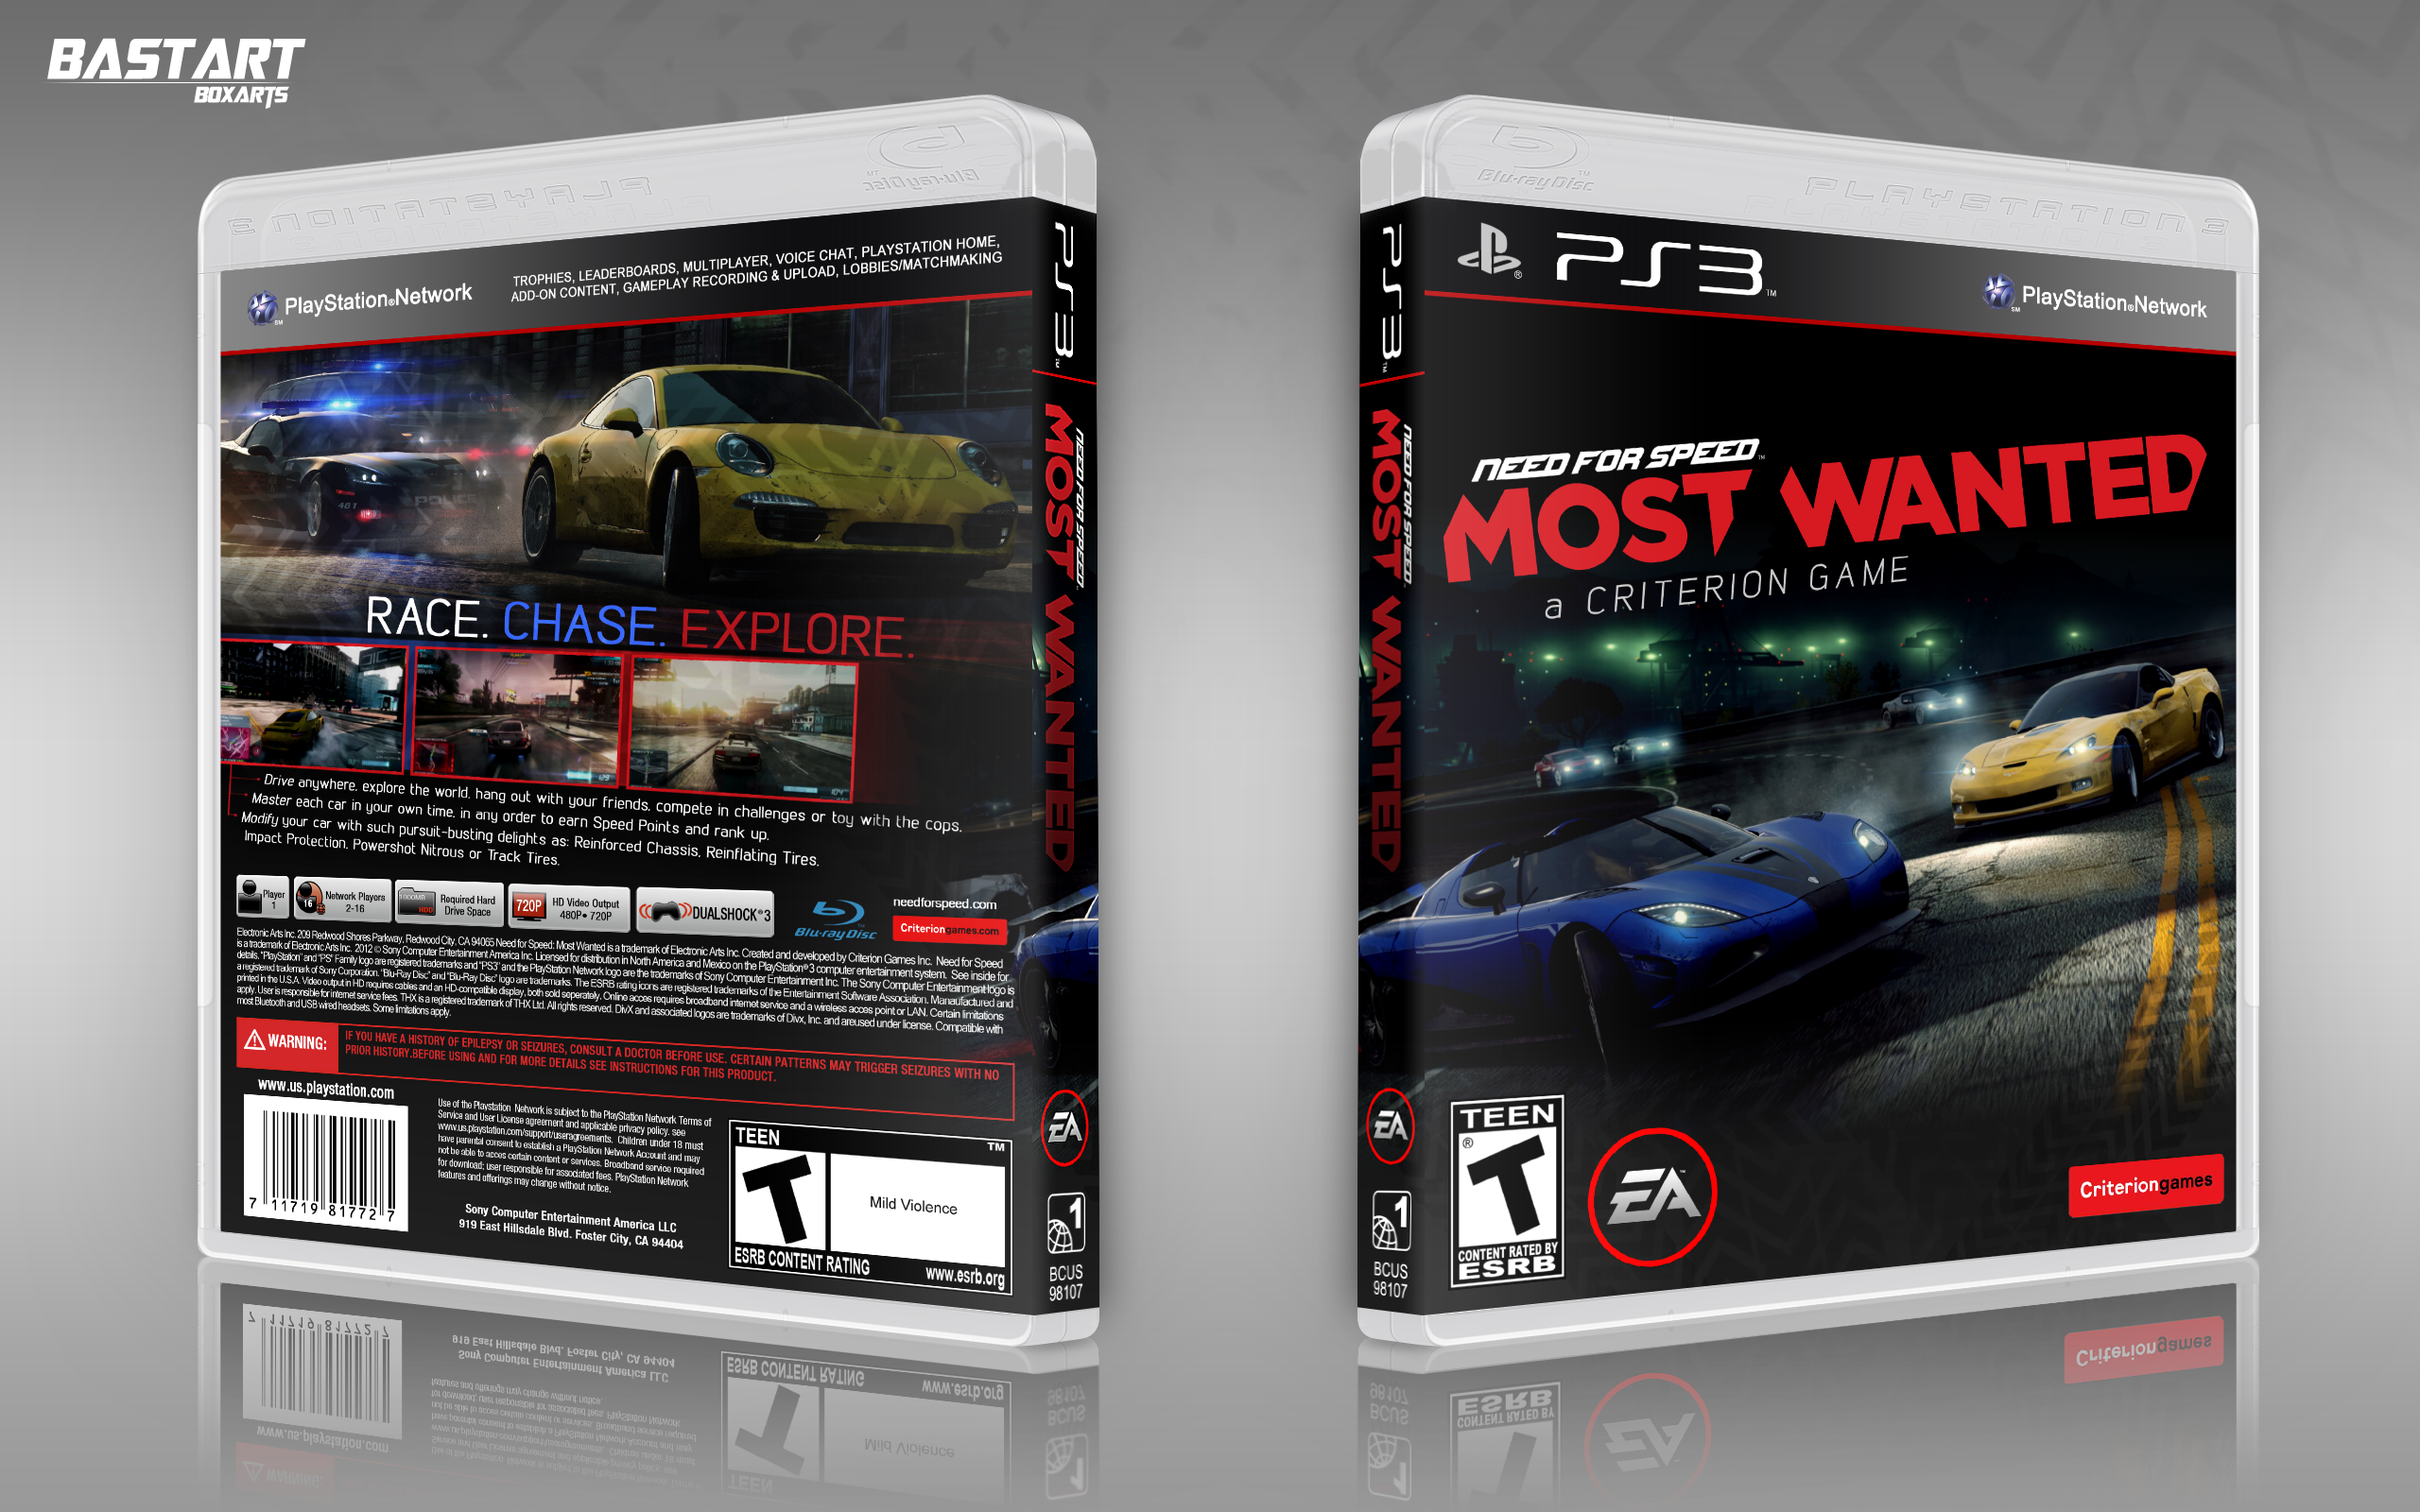 Need For Speed: Most Wanted box cover